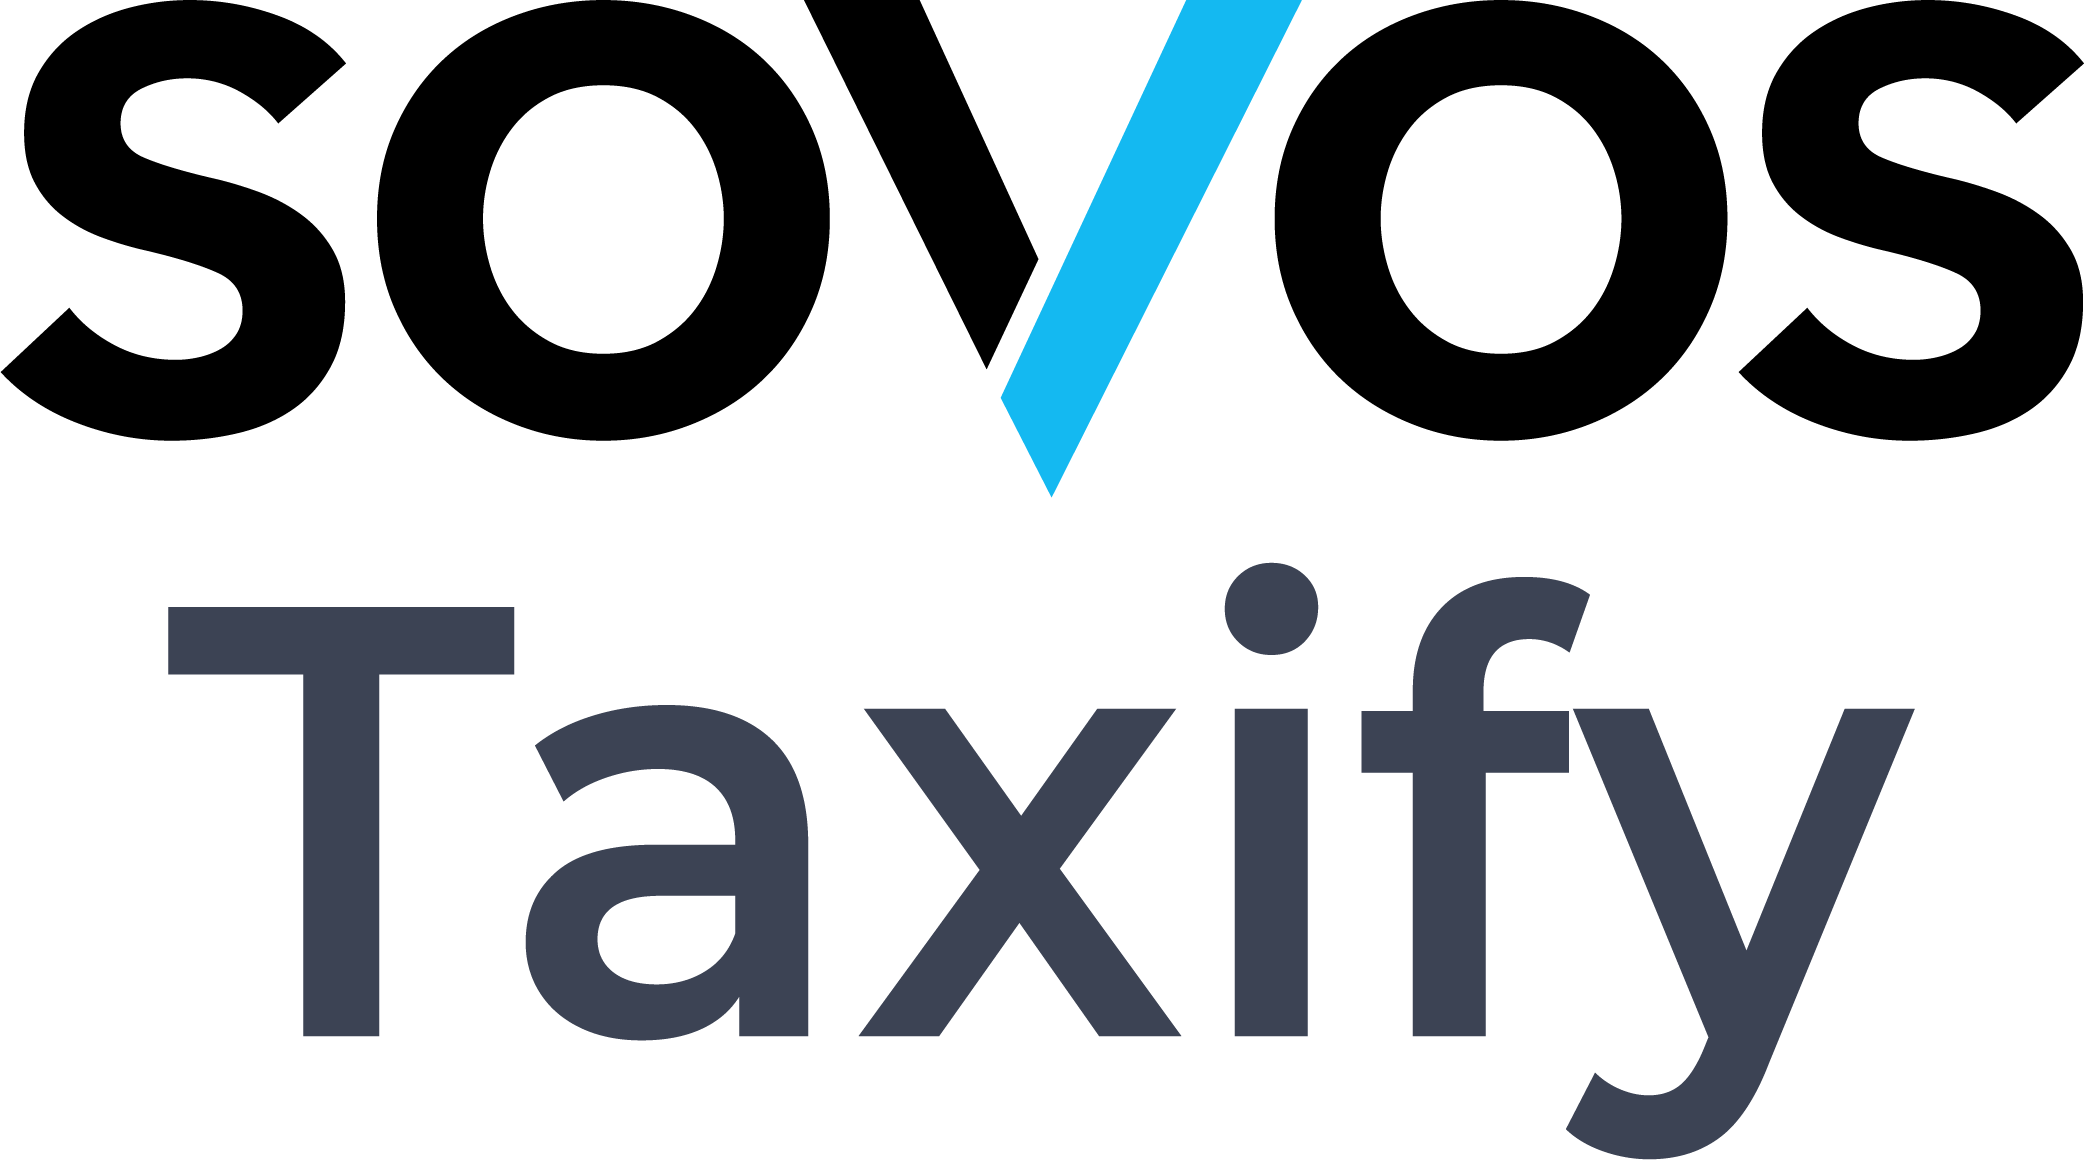 Taxify.co